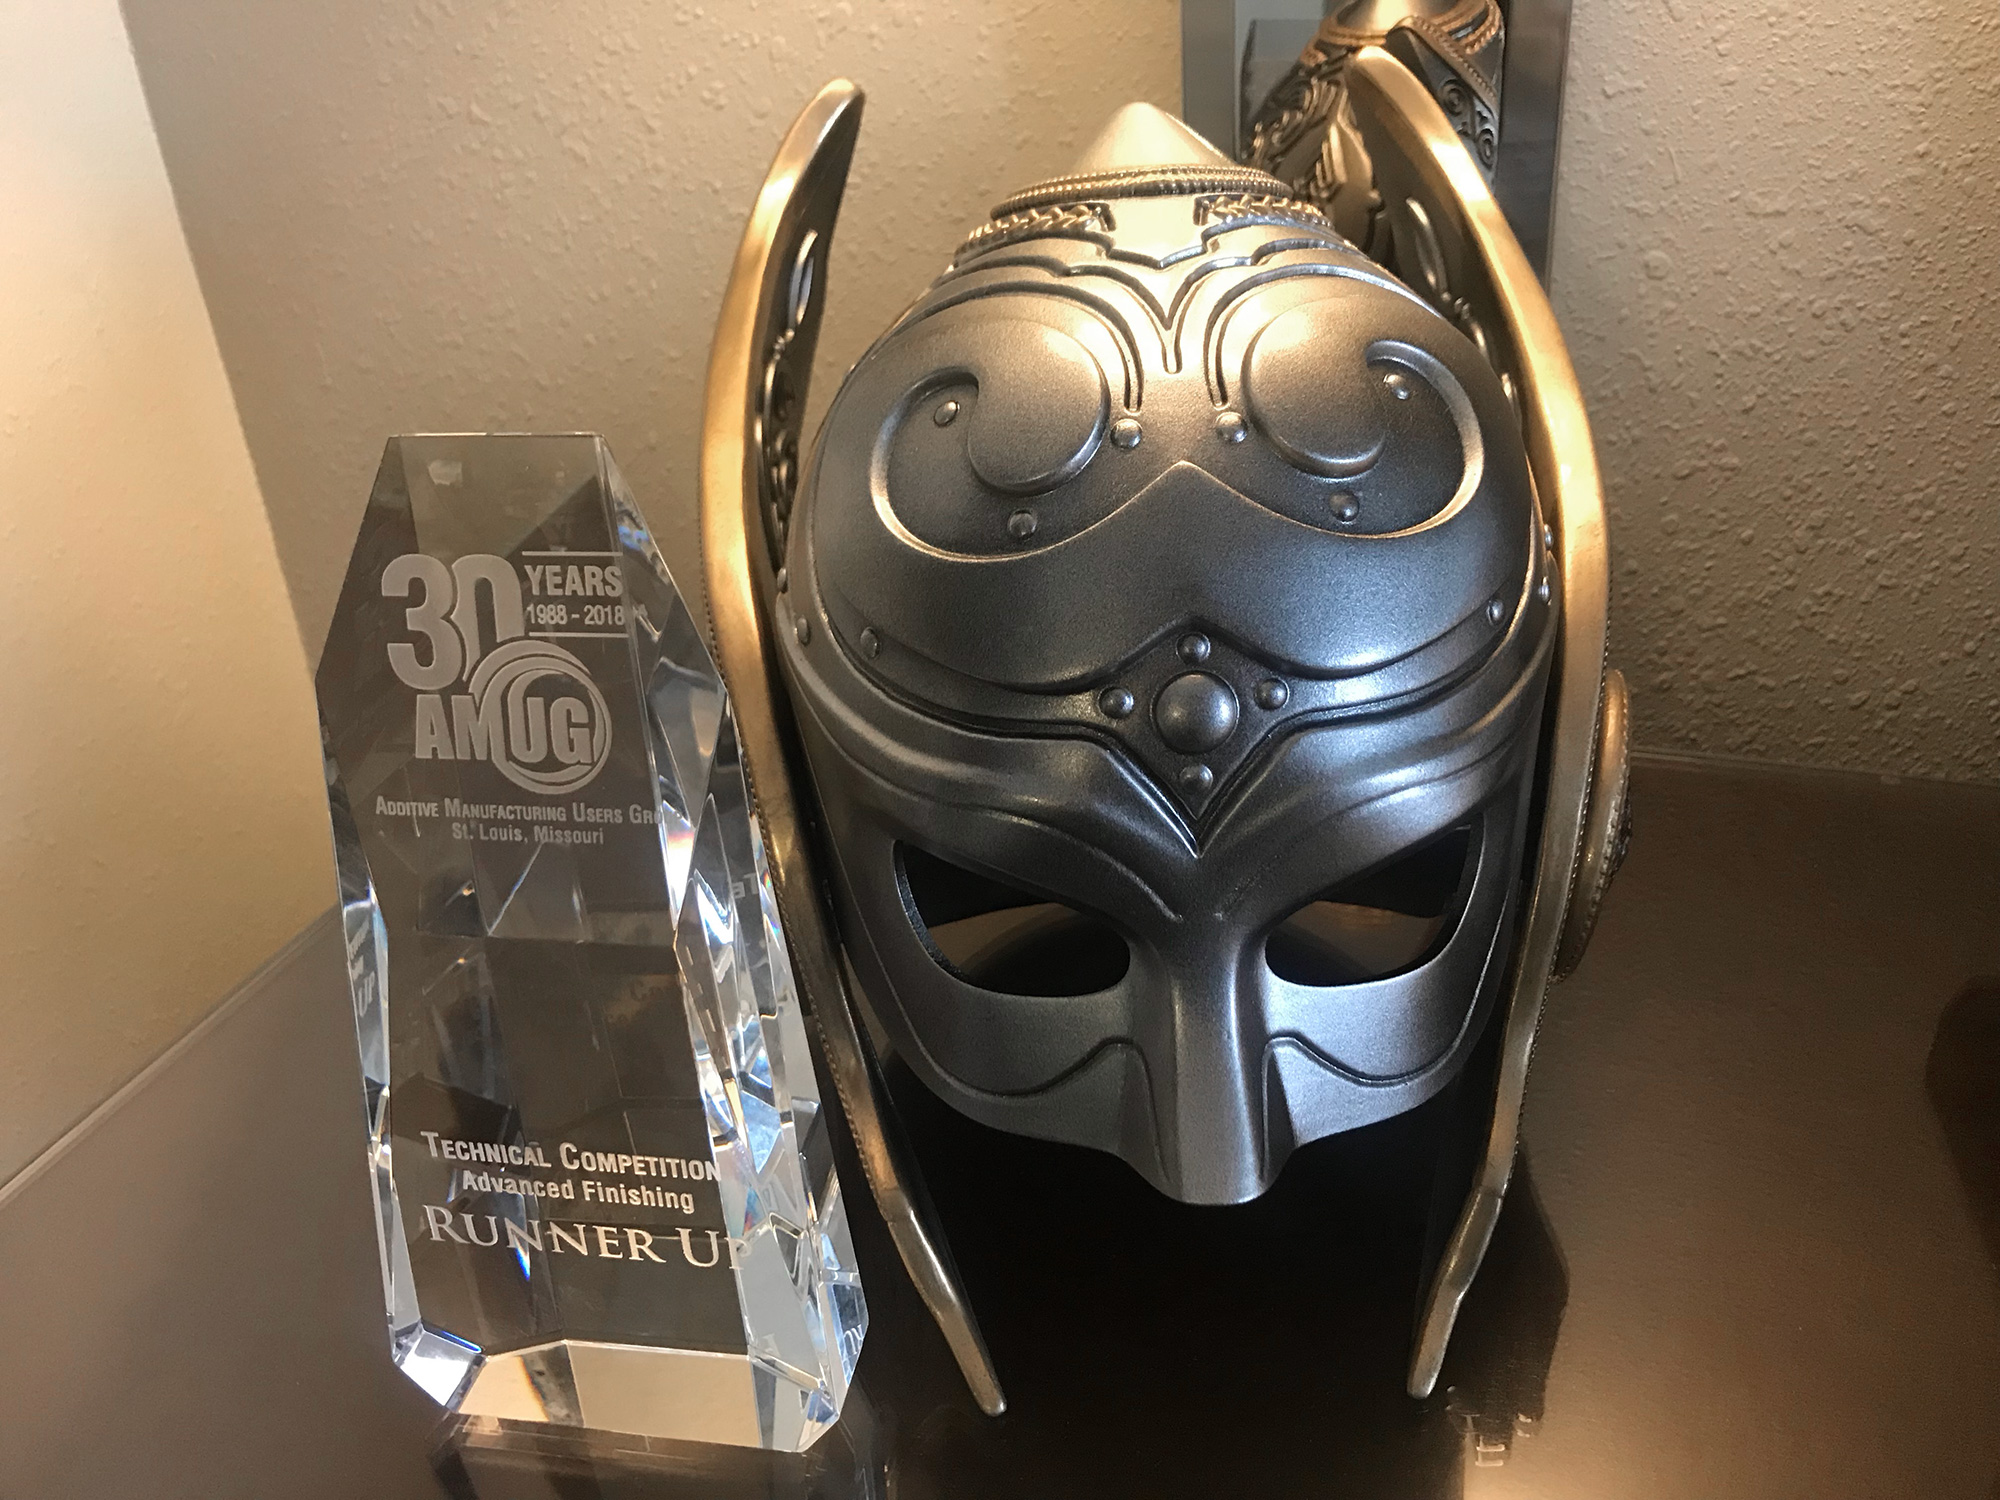 Jane Foster's helmet next to the AMUGS award